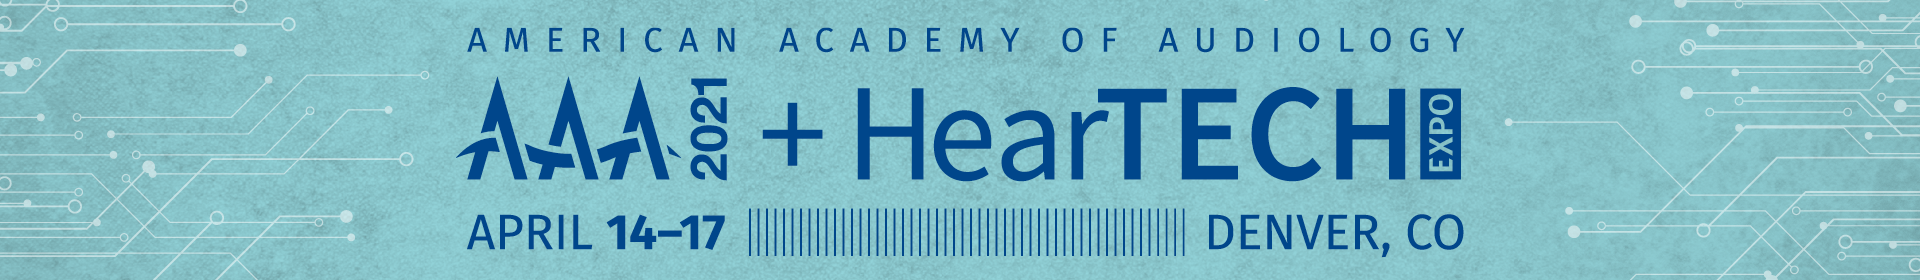 AAA 2021 + HearTECH Expo Event Banner